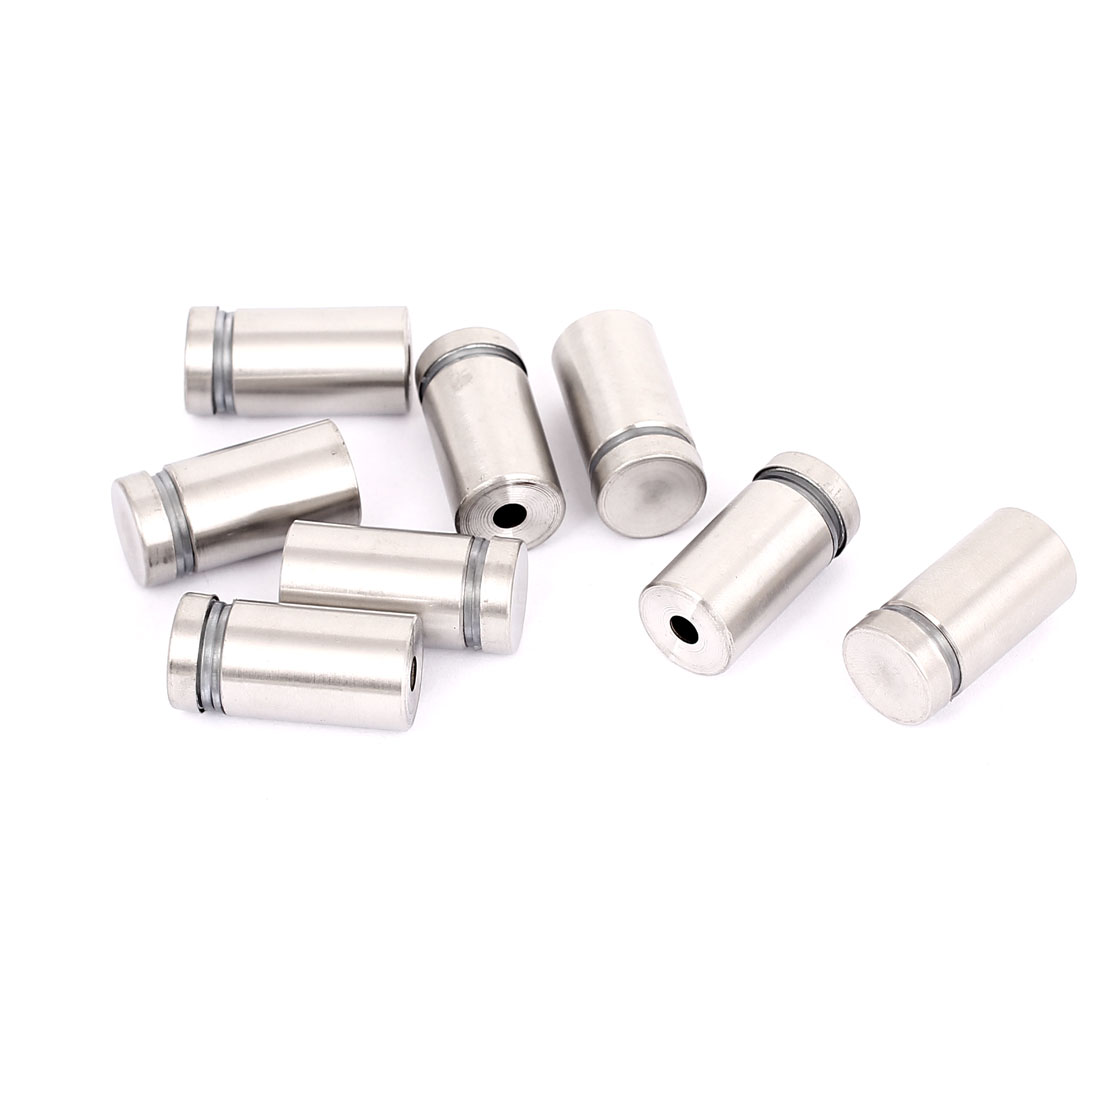 16mm x 30mm Stainless Steel Advertising Frameless Glass Standoff Pins Clamp 8pcs